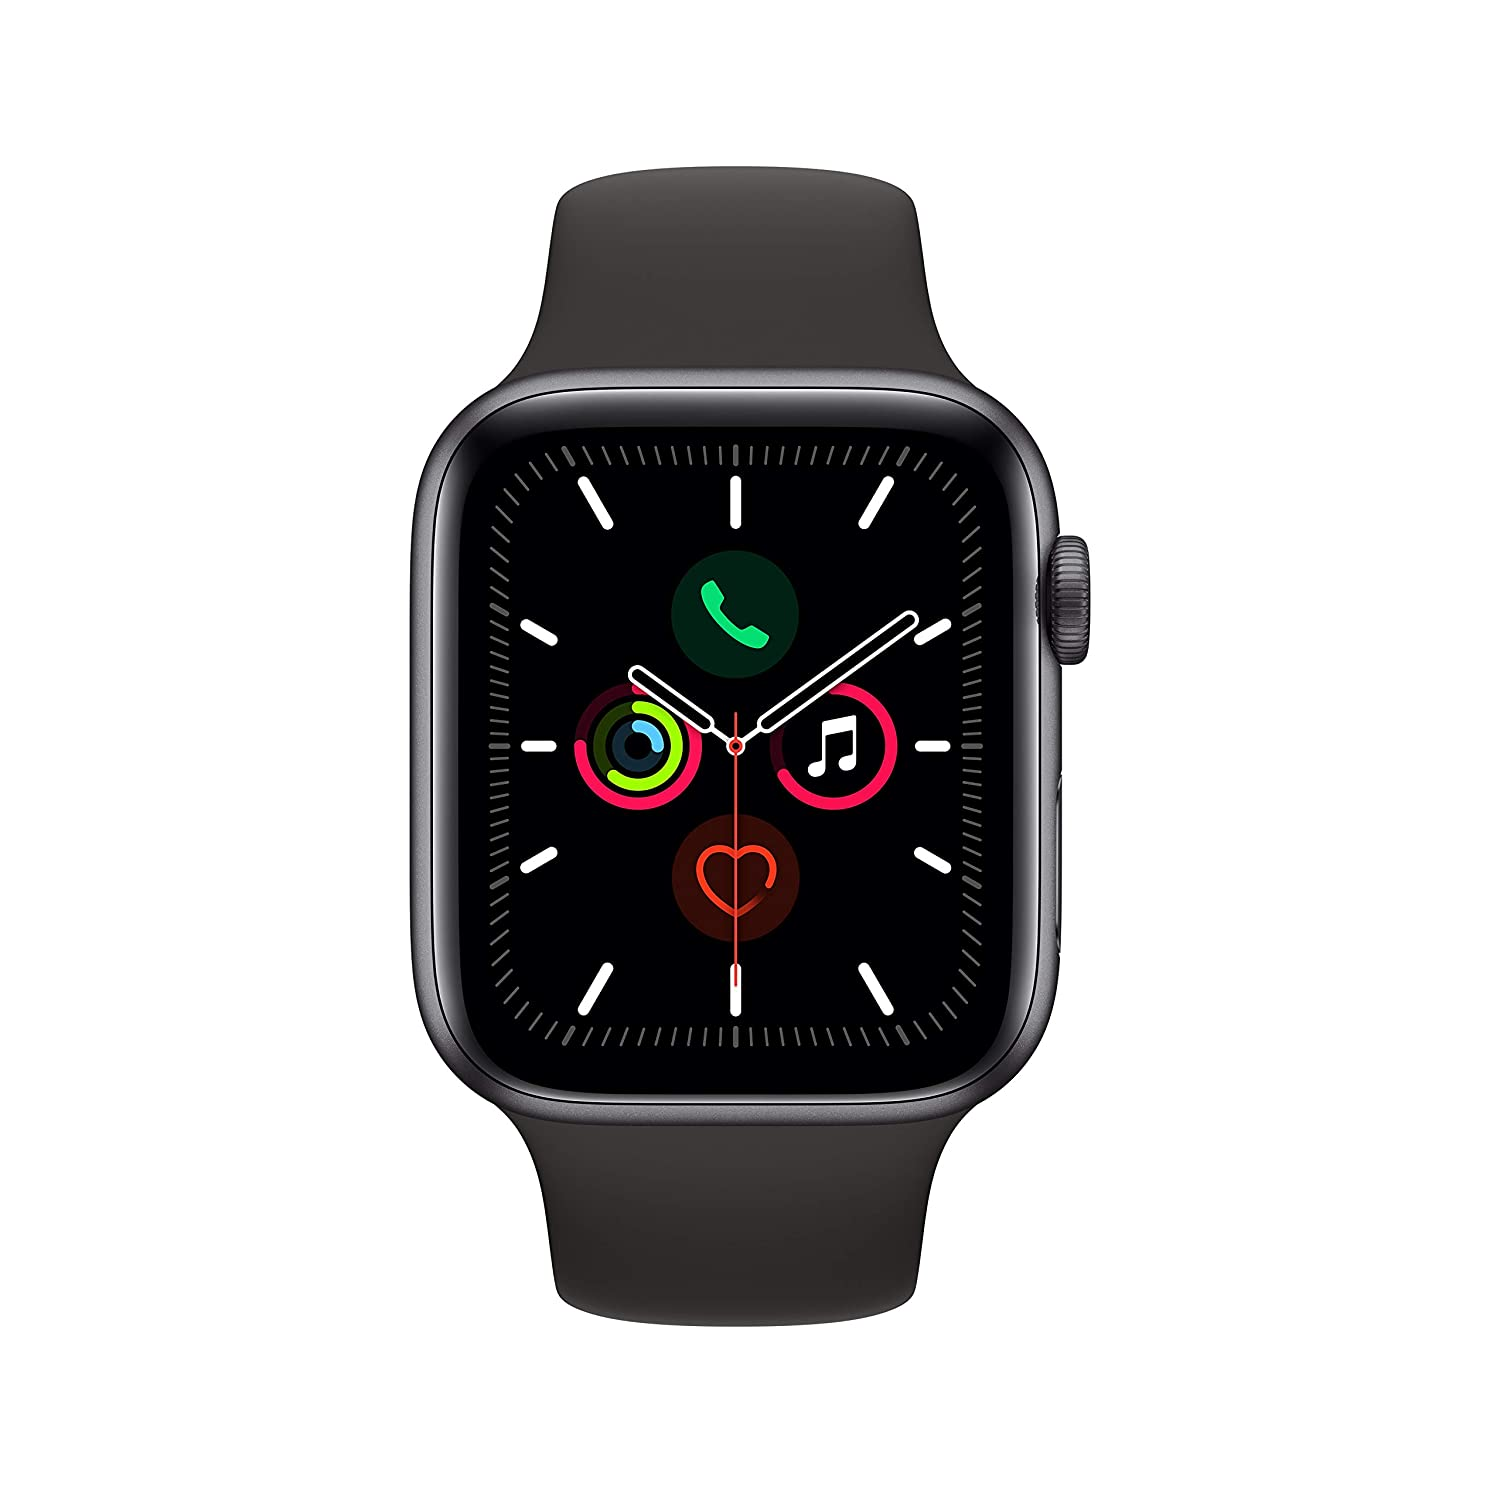 Apple Watch Series 5 (GPS + Cellular, 44mm) – Space Gray Aluminium Case with Black Sport Band